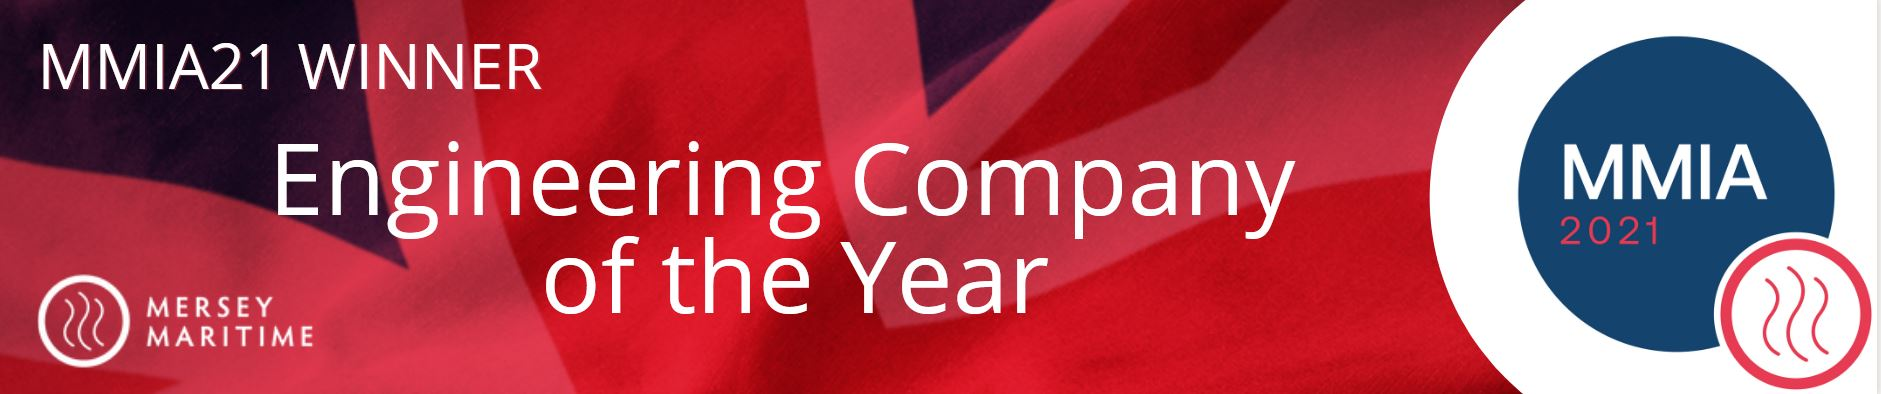 Engineering Company Of the Year